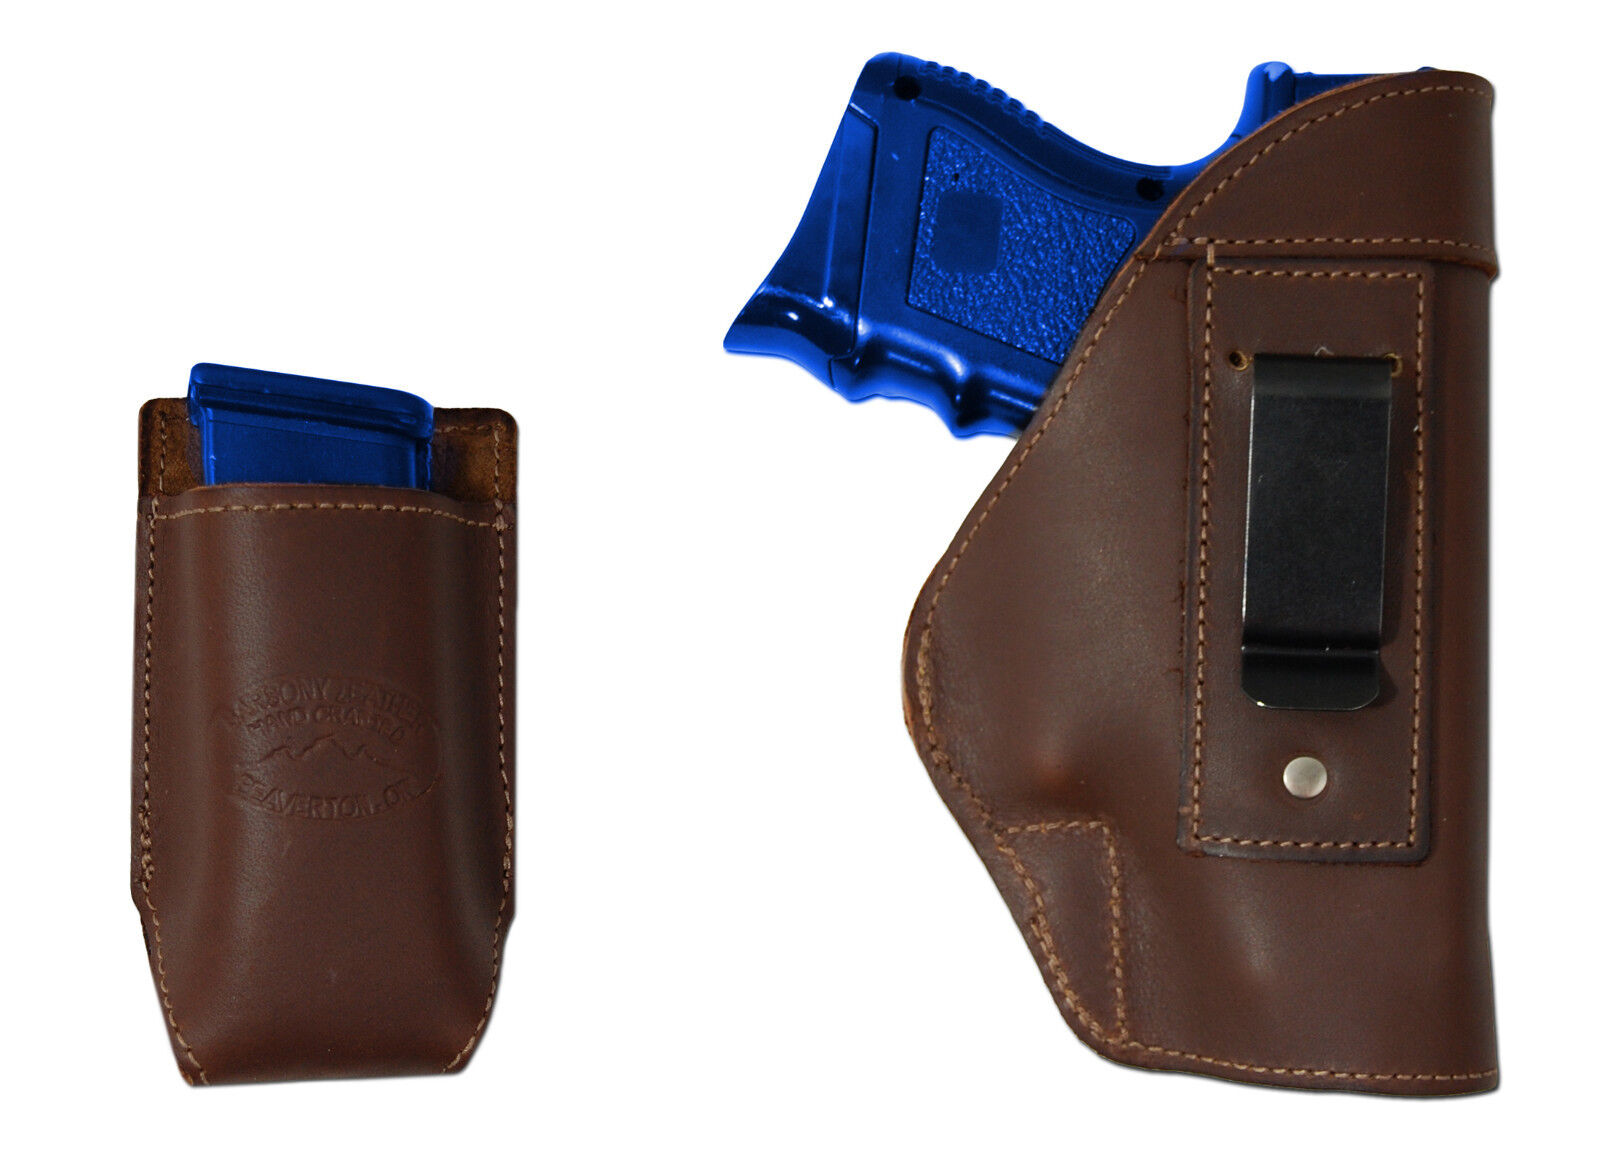 NEW Barsony Braun Leder IWB Holster + Mag Pouch for Taurus Compact 9mm 40 45